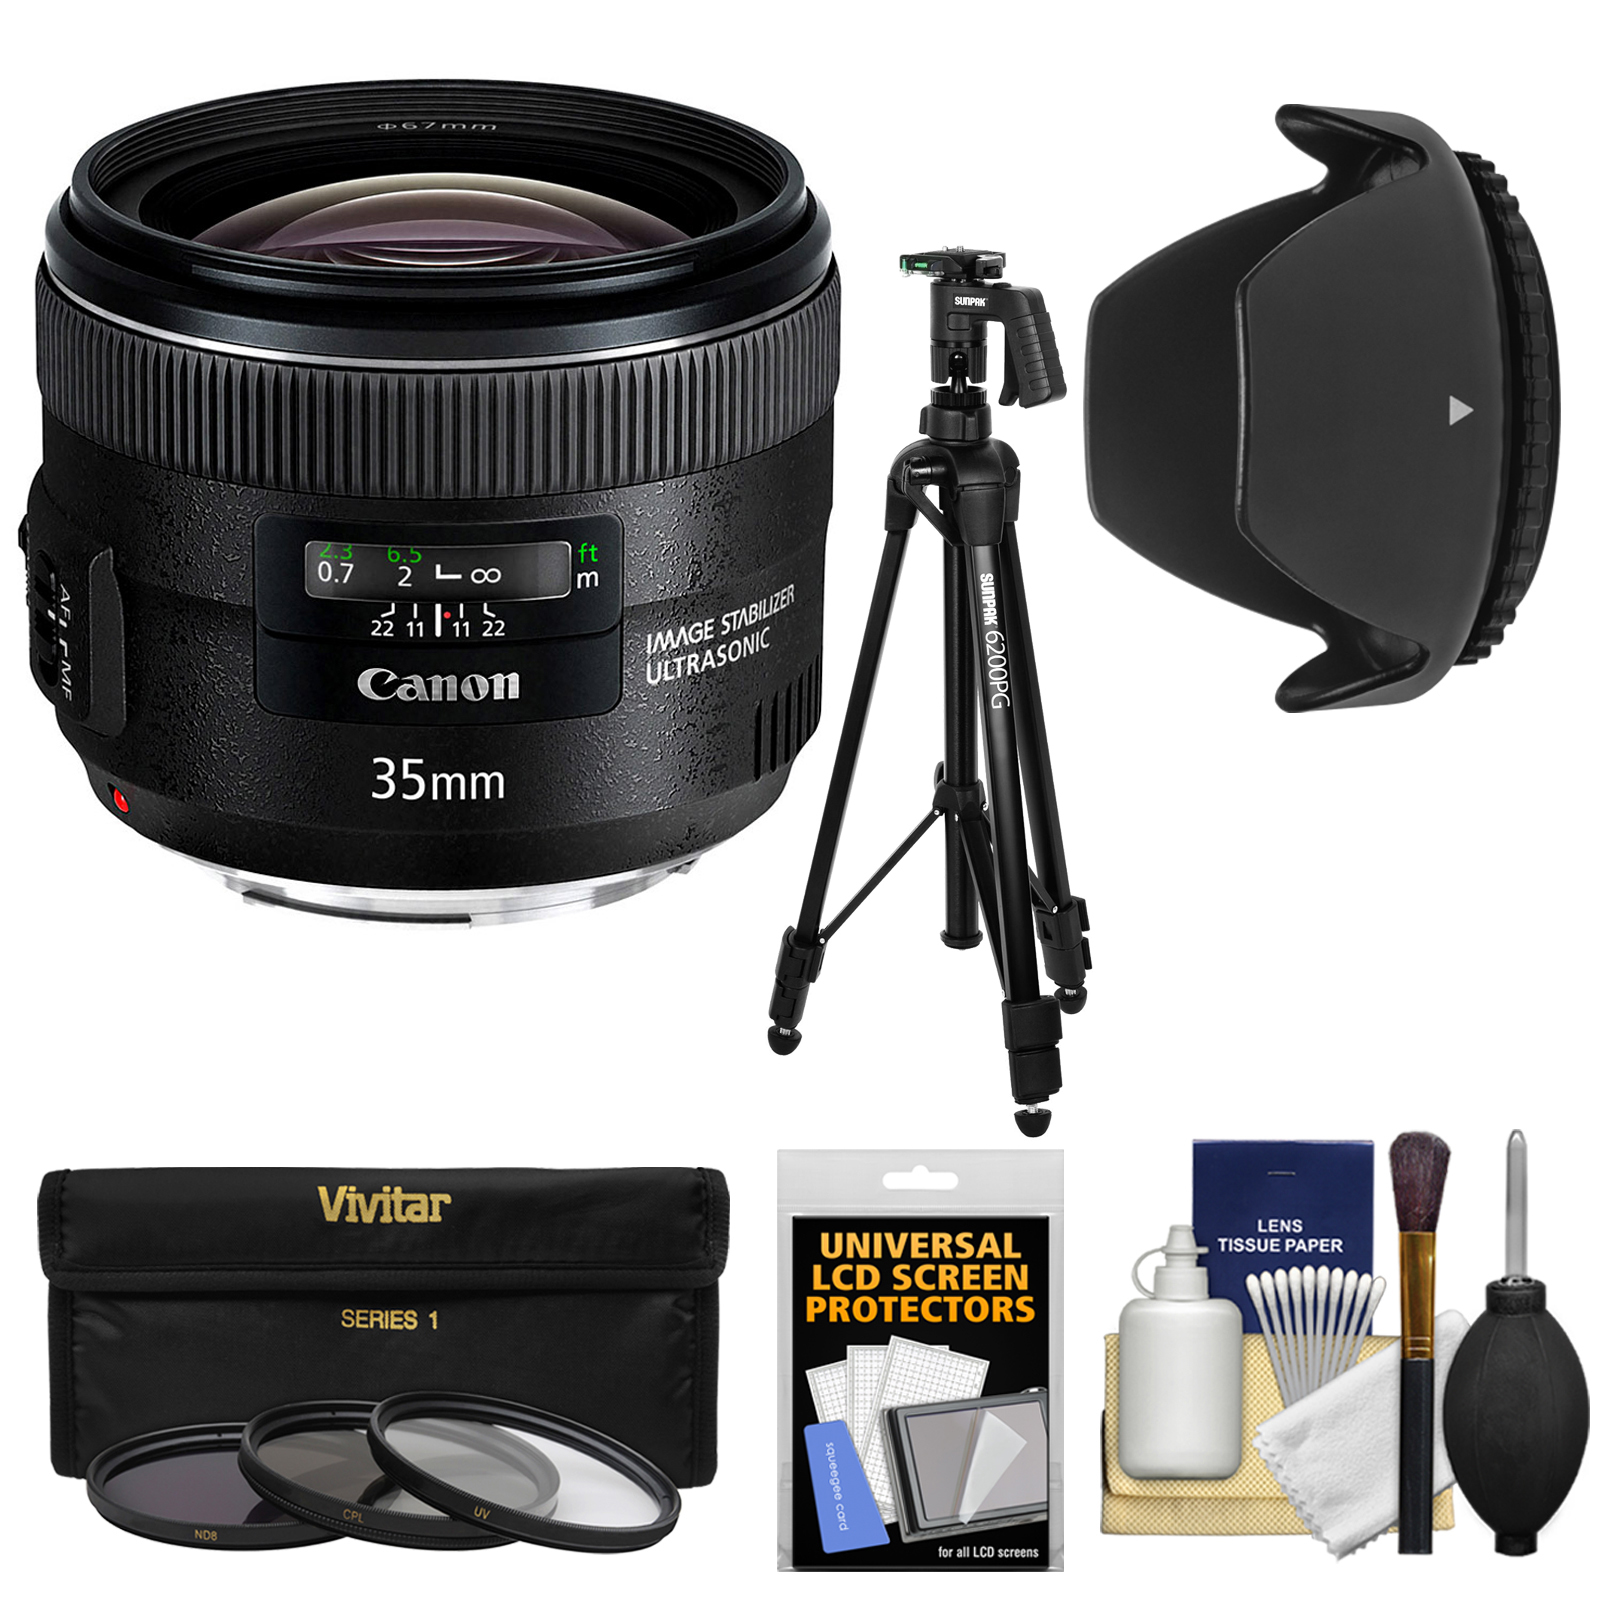 canon ef 35mm f/2 is usm lens with tripod + 3 filters